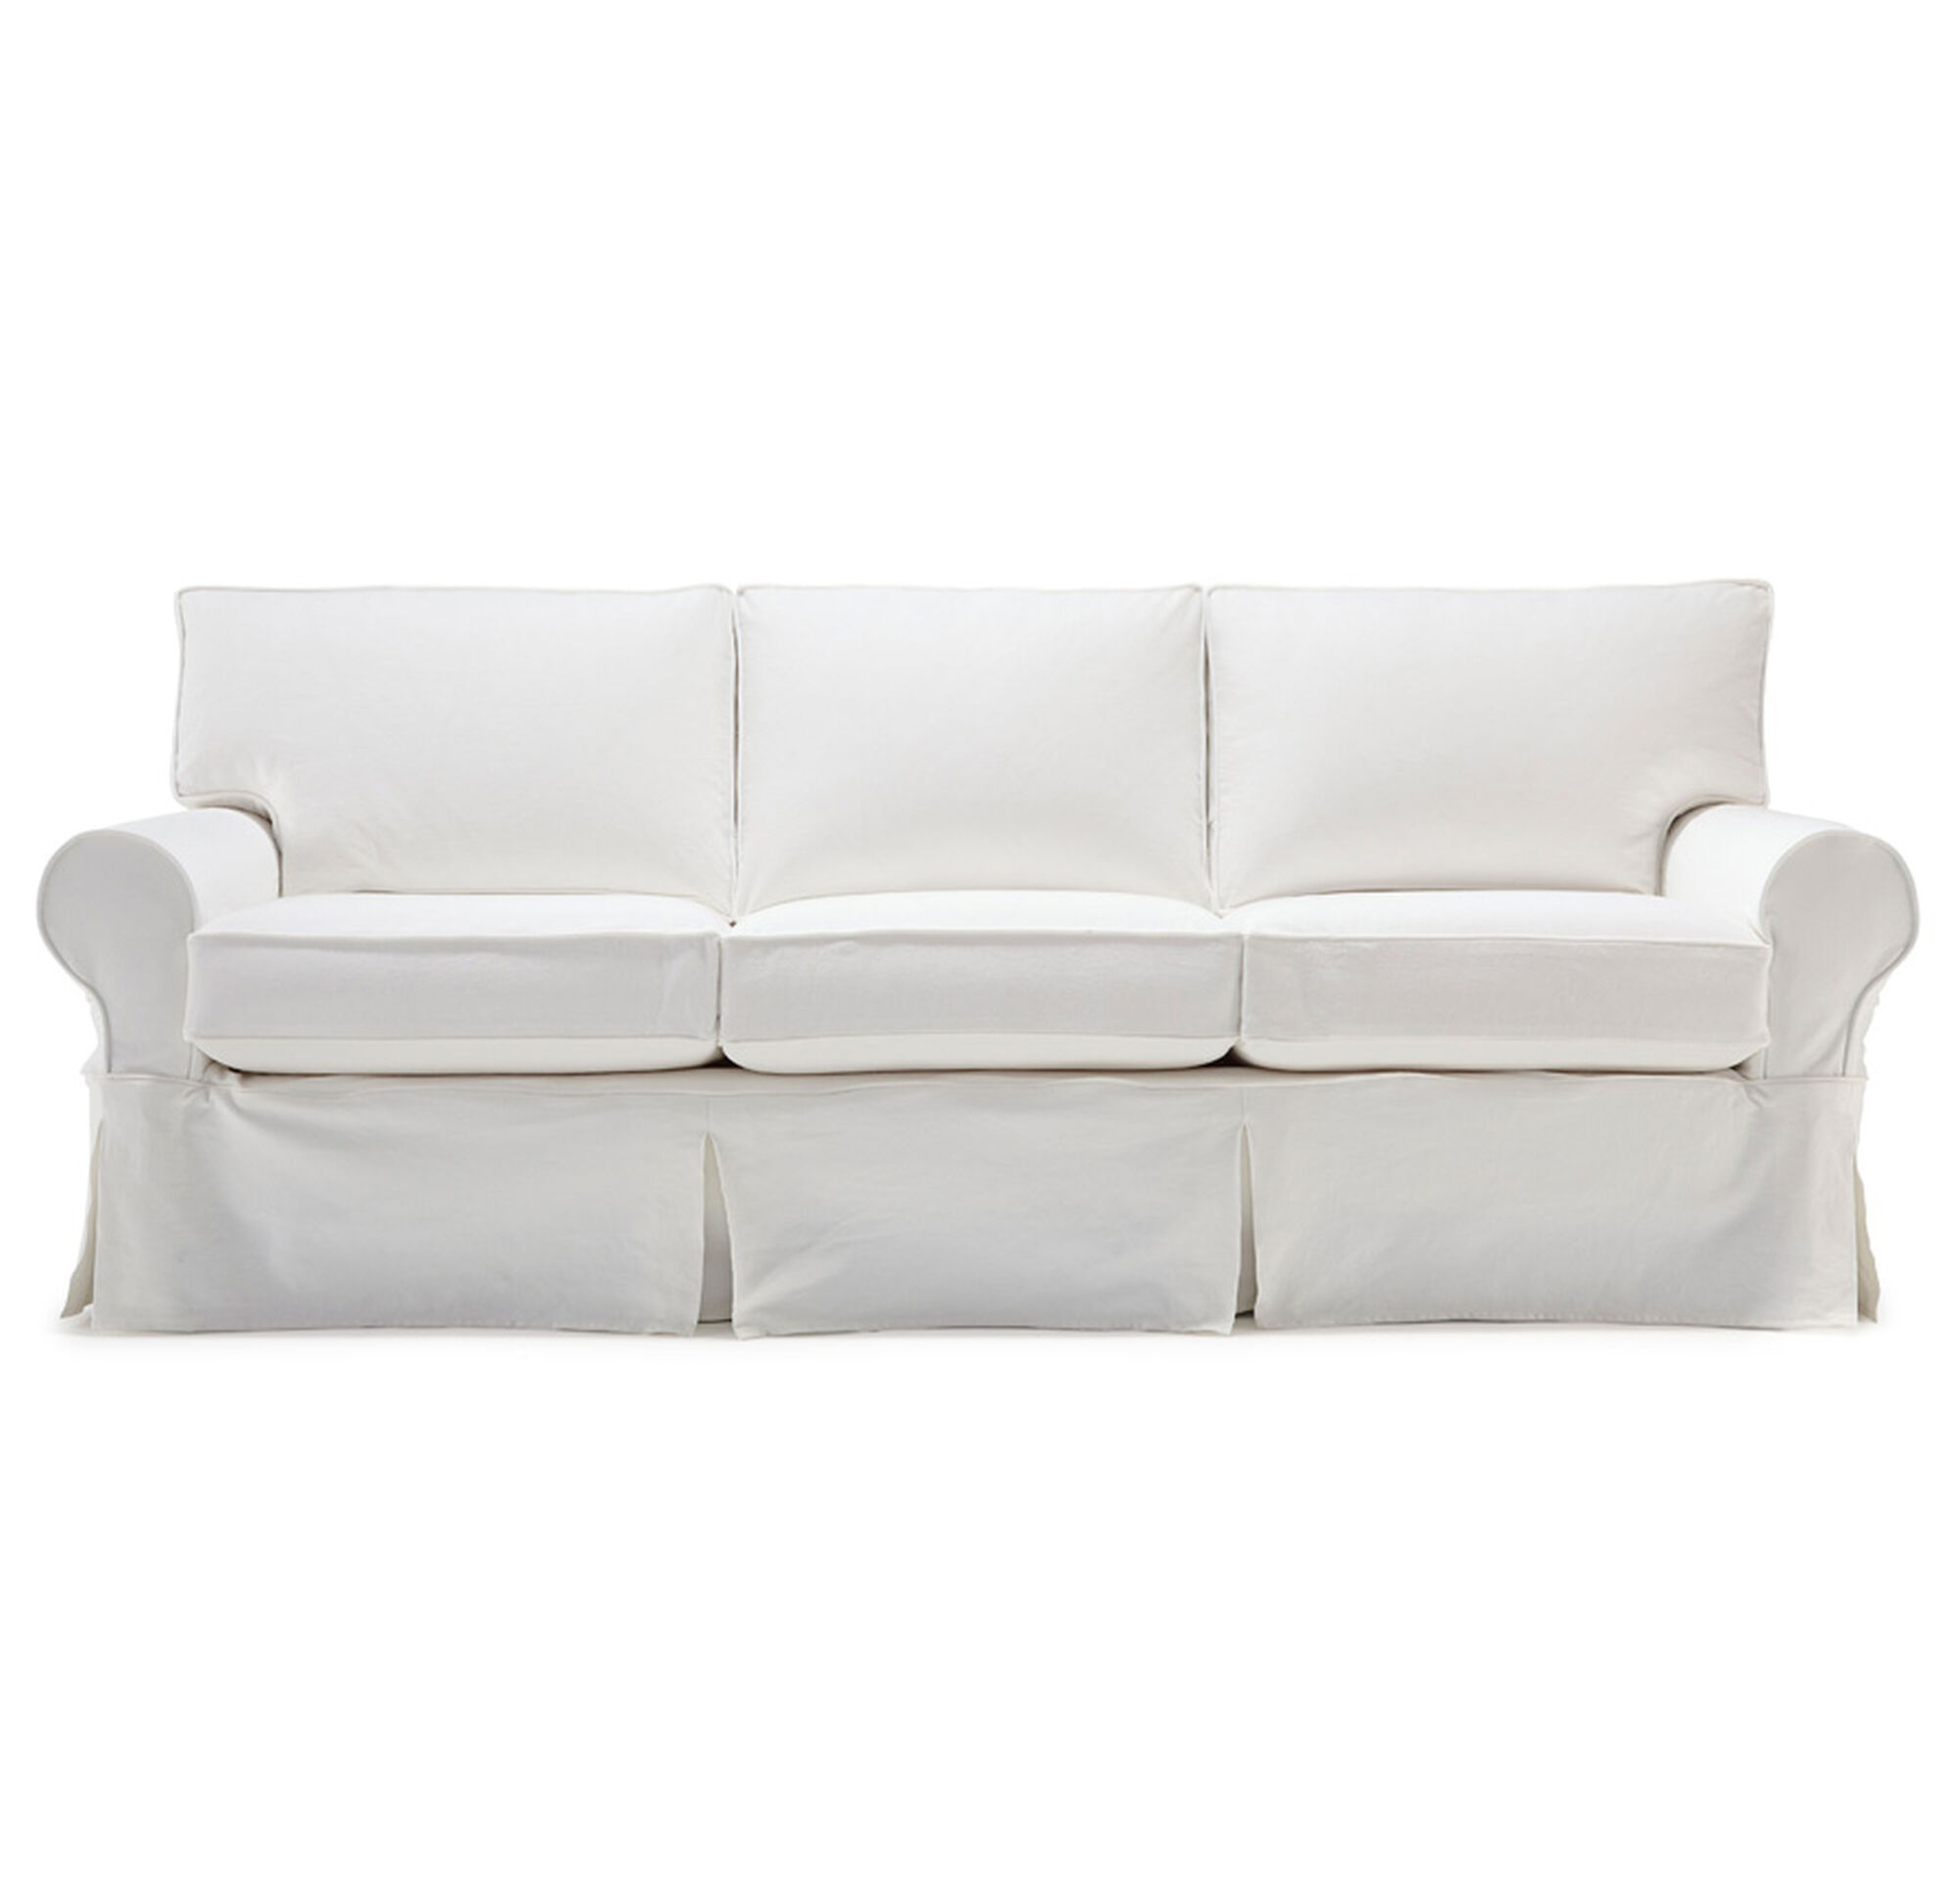 Awe Inspiring Alexa Ii Luxe Queen Slipcover Sleeper Sofa Pdpeps Interior Chair Design Pdpepsorg